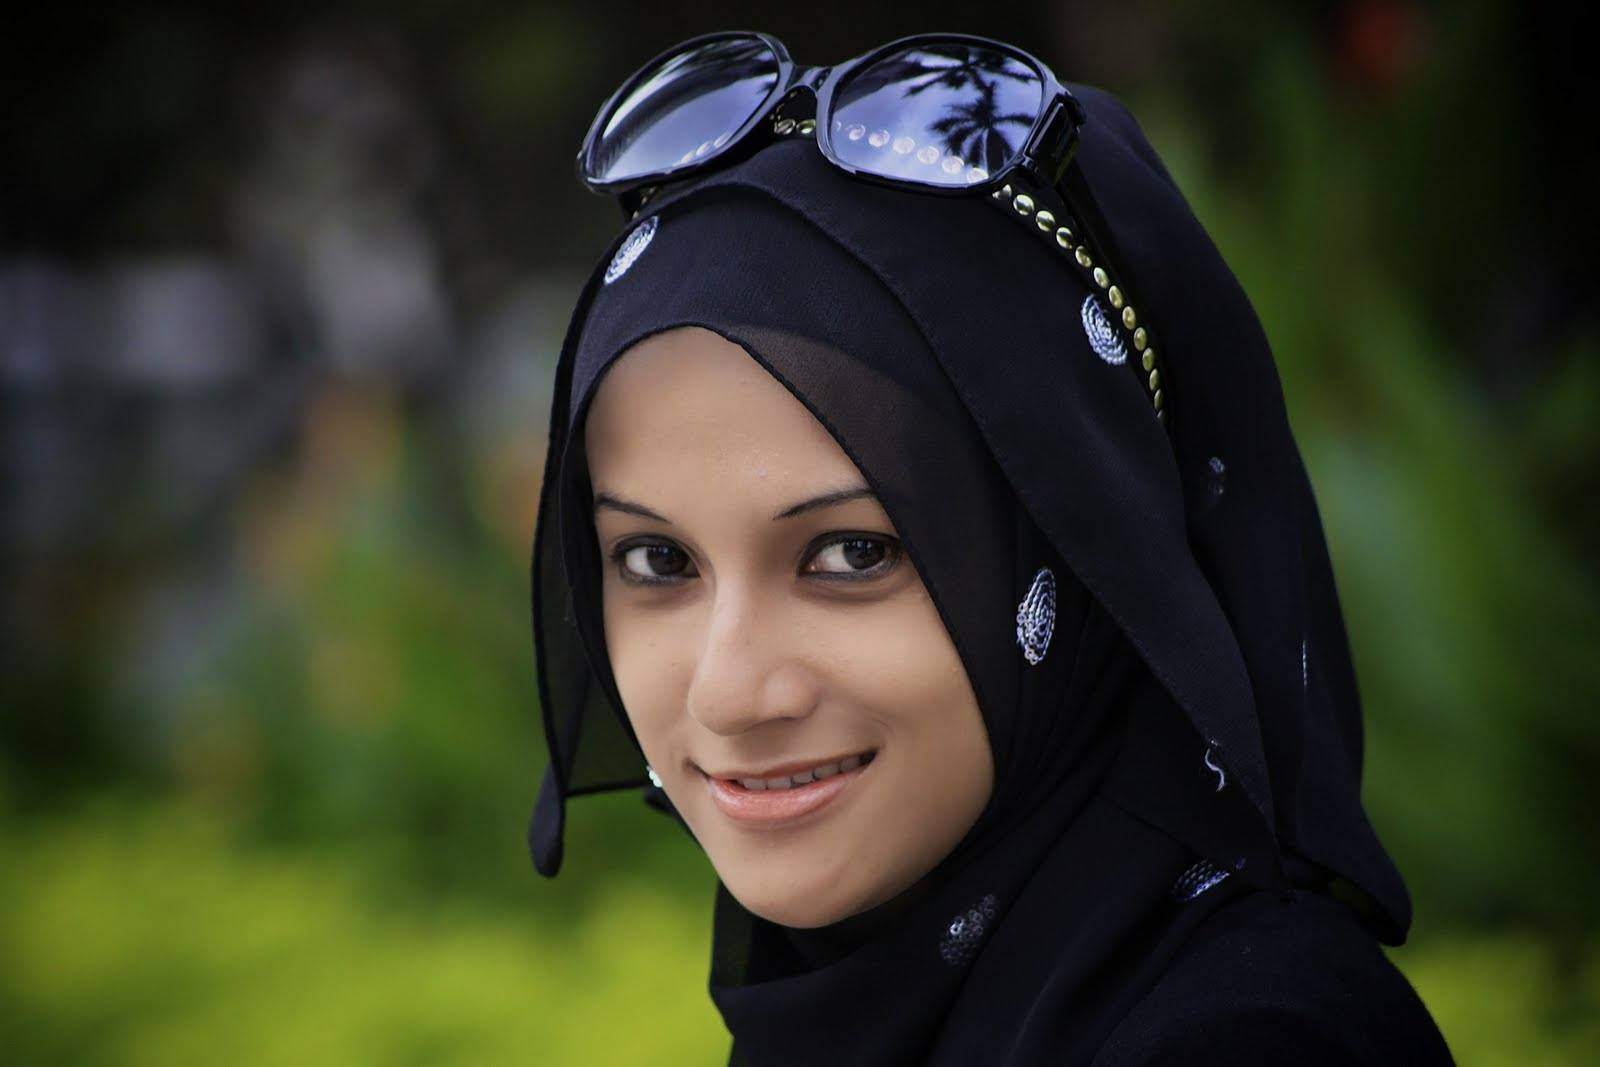 arrecife single muslim girls Arrecife's best 100% free muslim dating site meet thousands of single muslims in arrecife with mingle2's free muslim personal ads and chat rooms our network of muslim men and women in arrecife is the perfect place to make muslim friends or find a muslim boyfriend or girlfriend in arrecife.